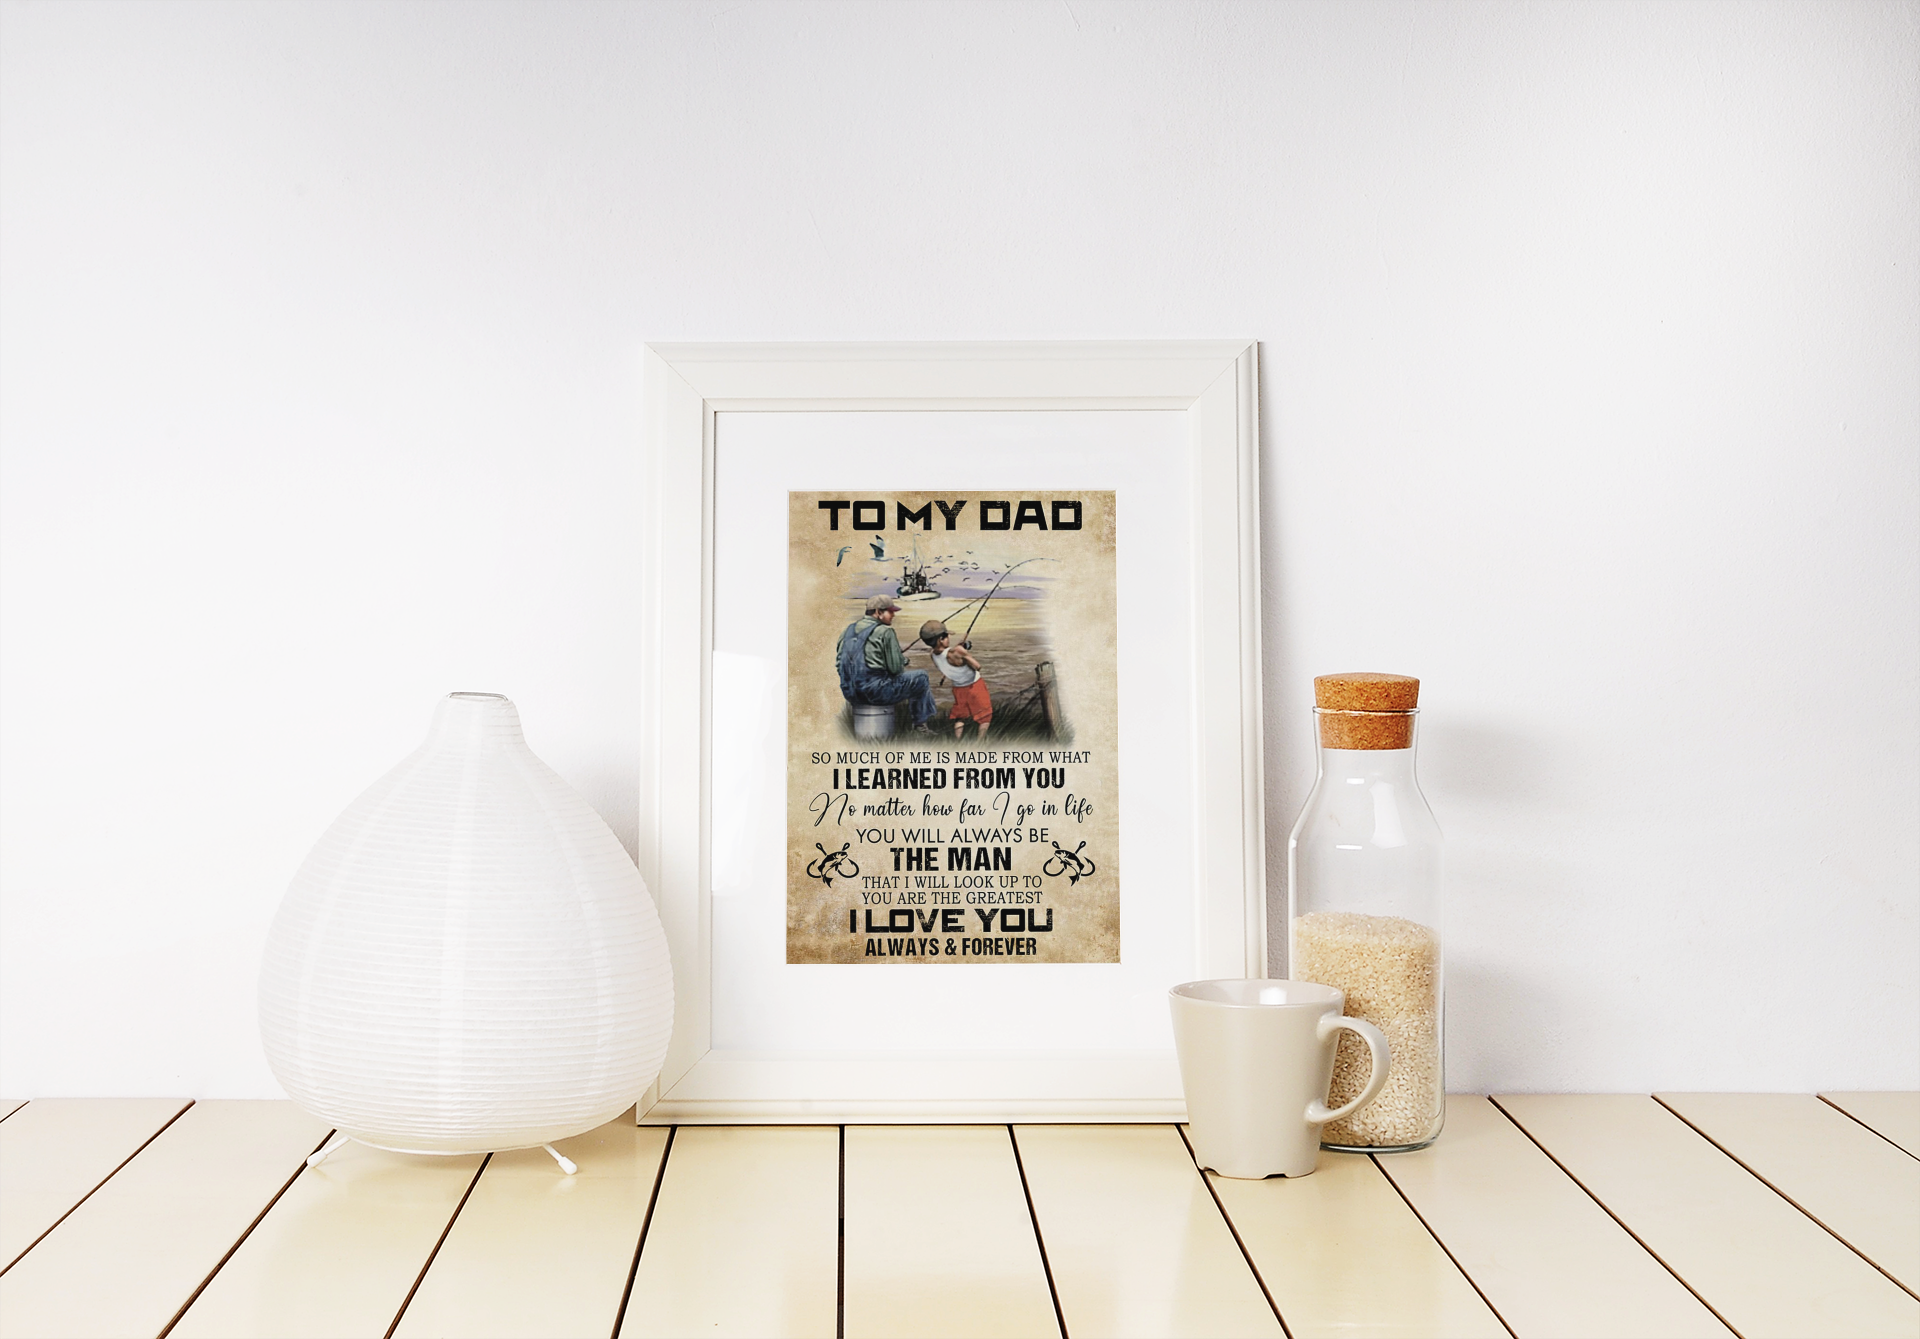 Fishing to my dad I learned from you poster 1